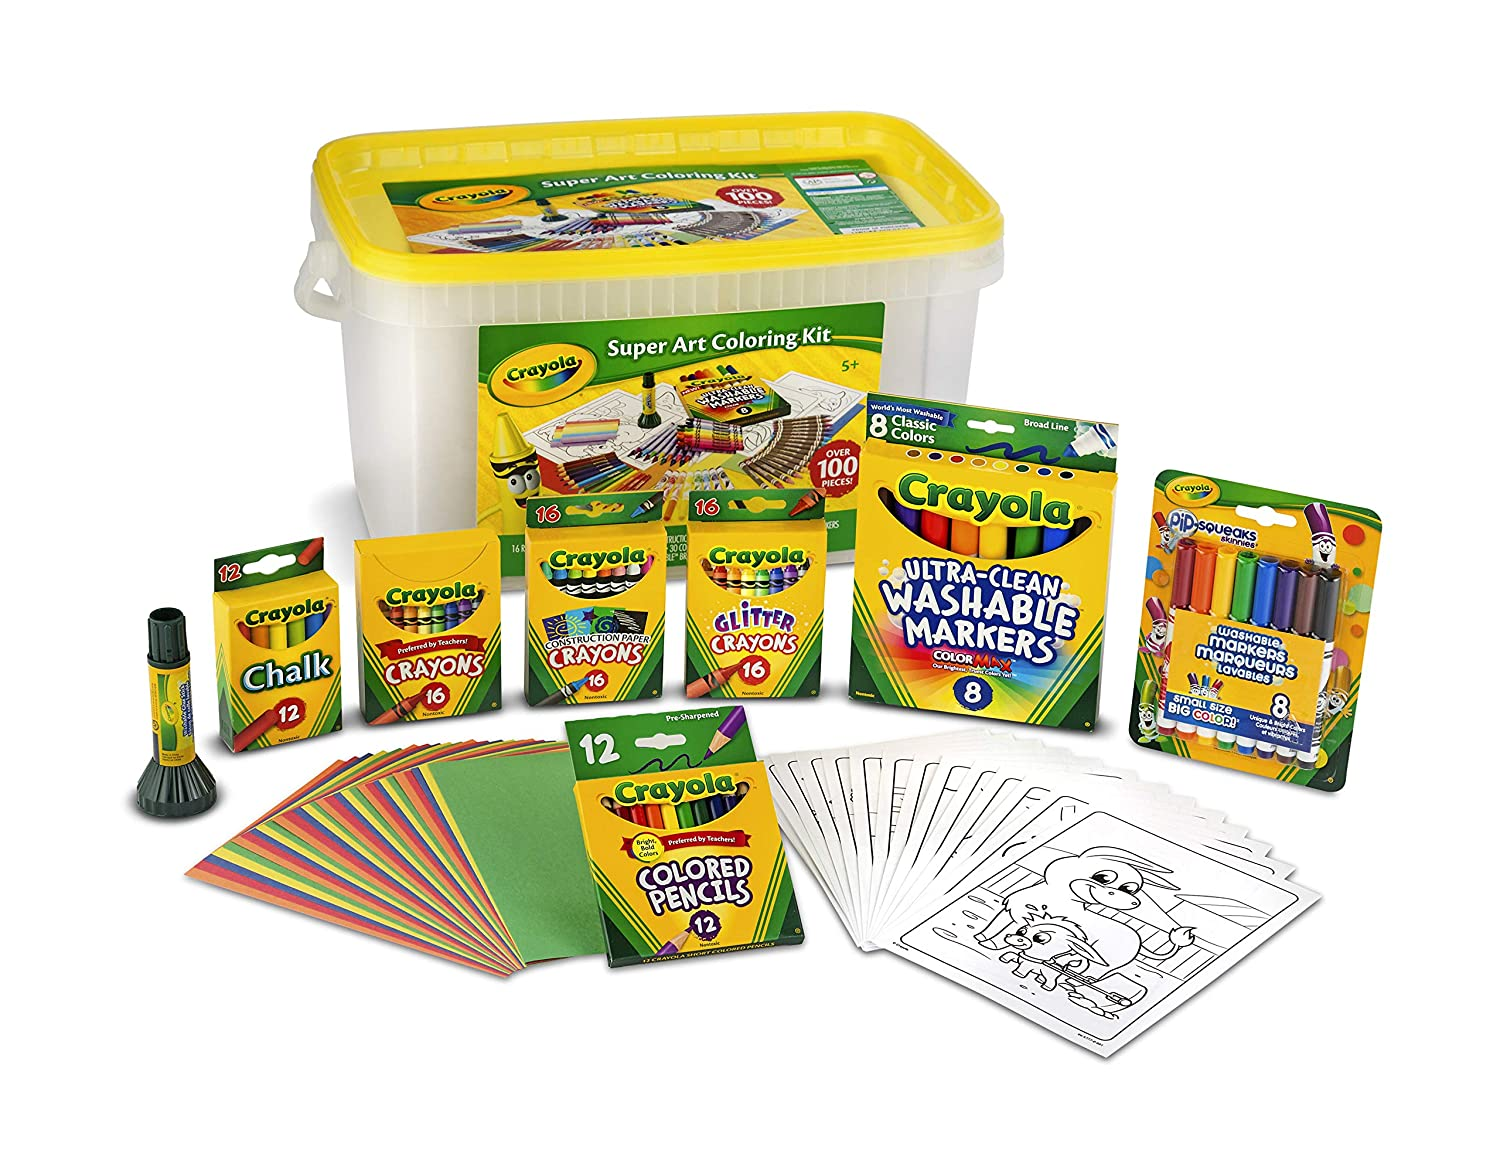 baf5abcaf Amazon.com: Crayola 04-0294 Super Art Kit, Gift for Kids, Exclusive, Over  100Piece: Toys & Games